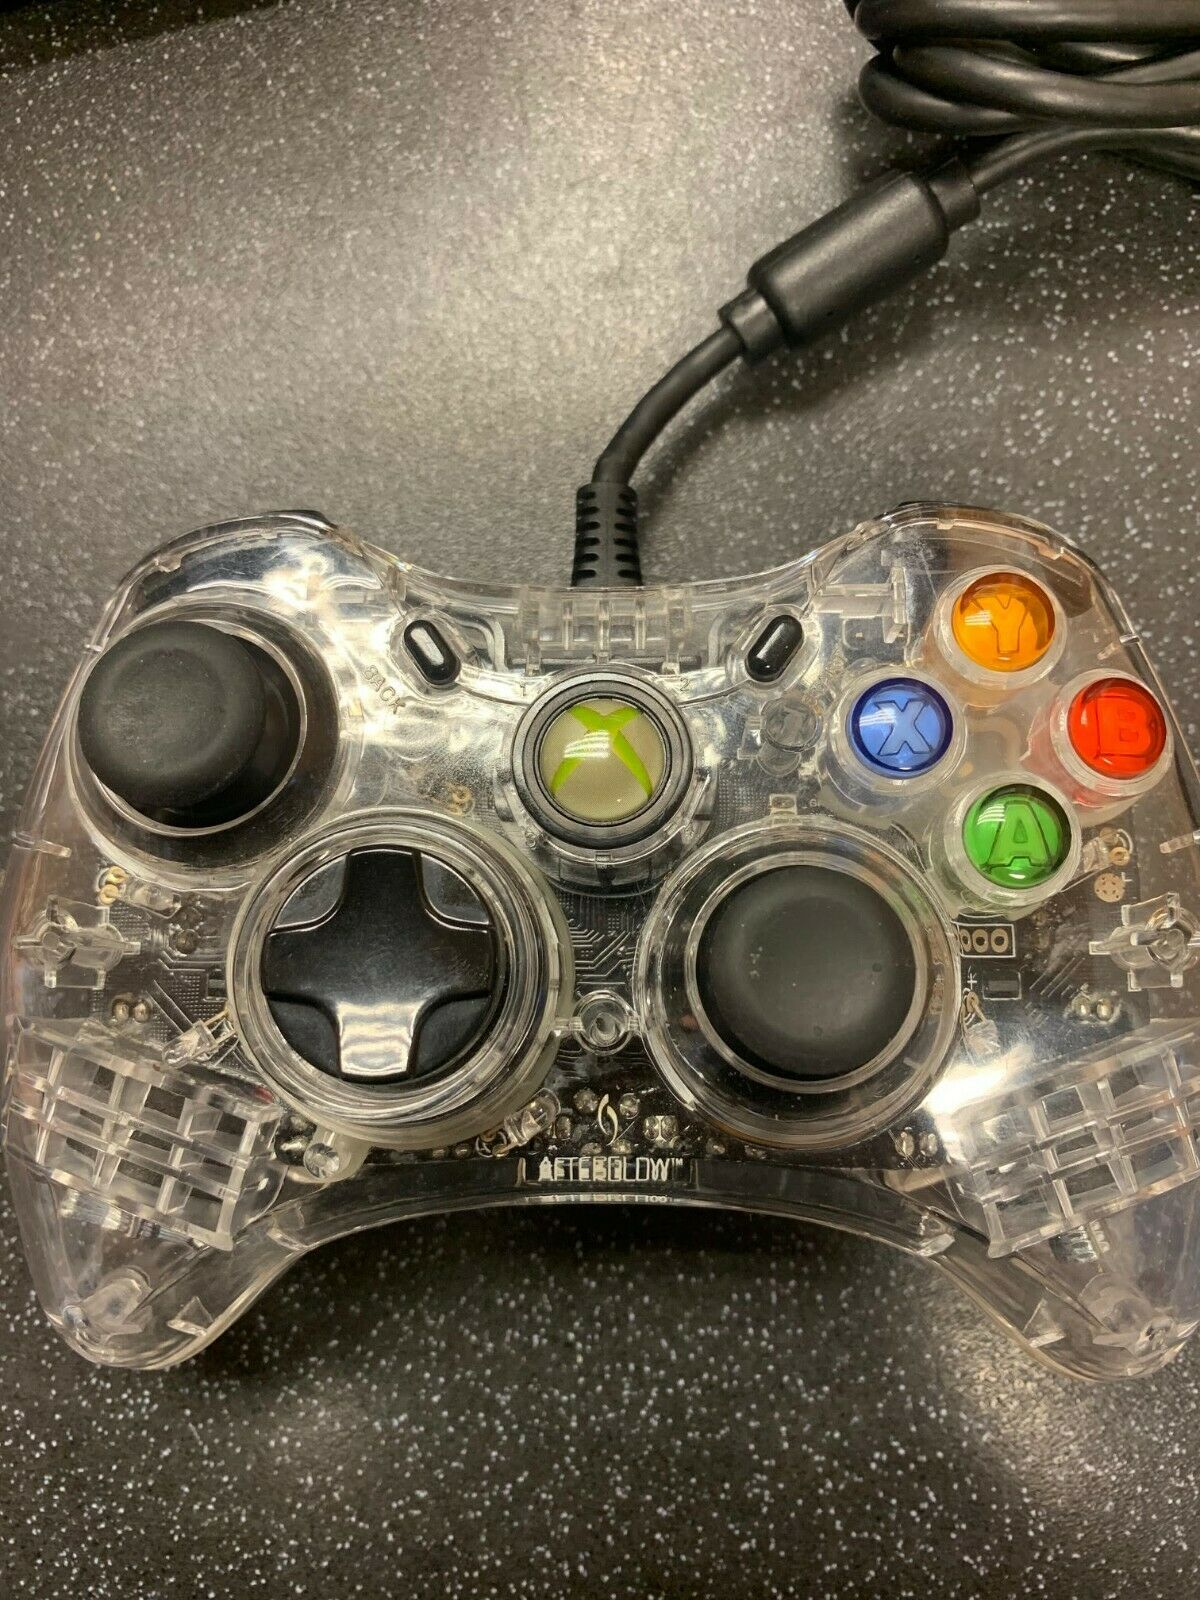 (NE6) Wired Afterglow Controller For Xbox 360 Or PC Untested No Breakaway Cable.